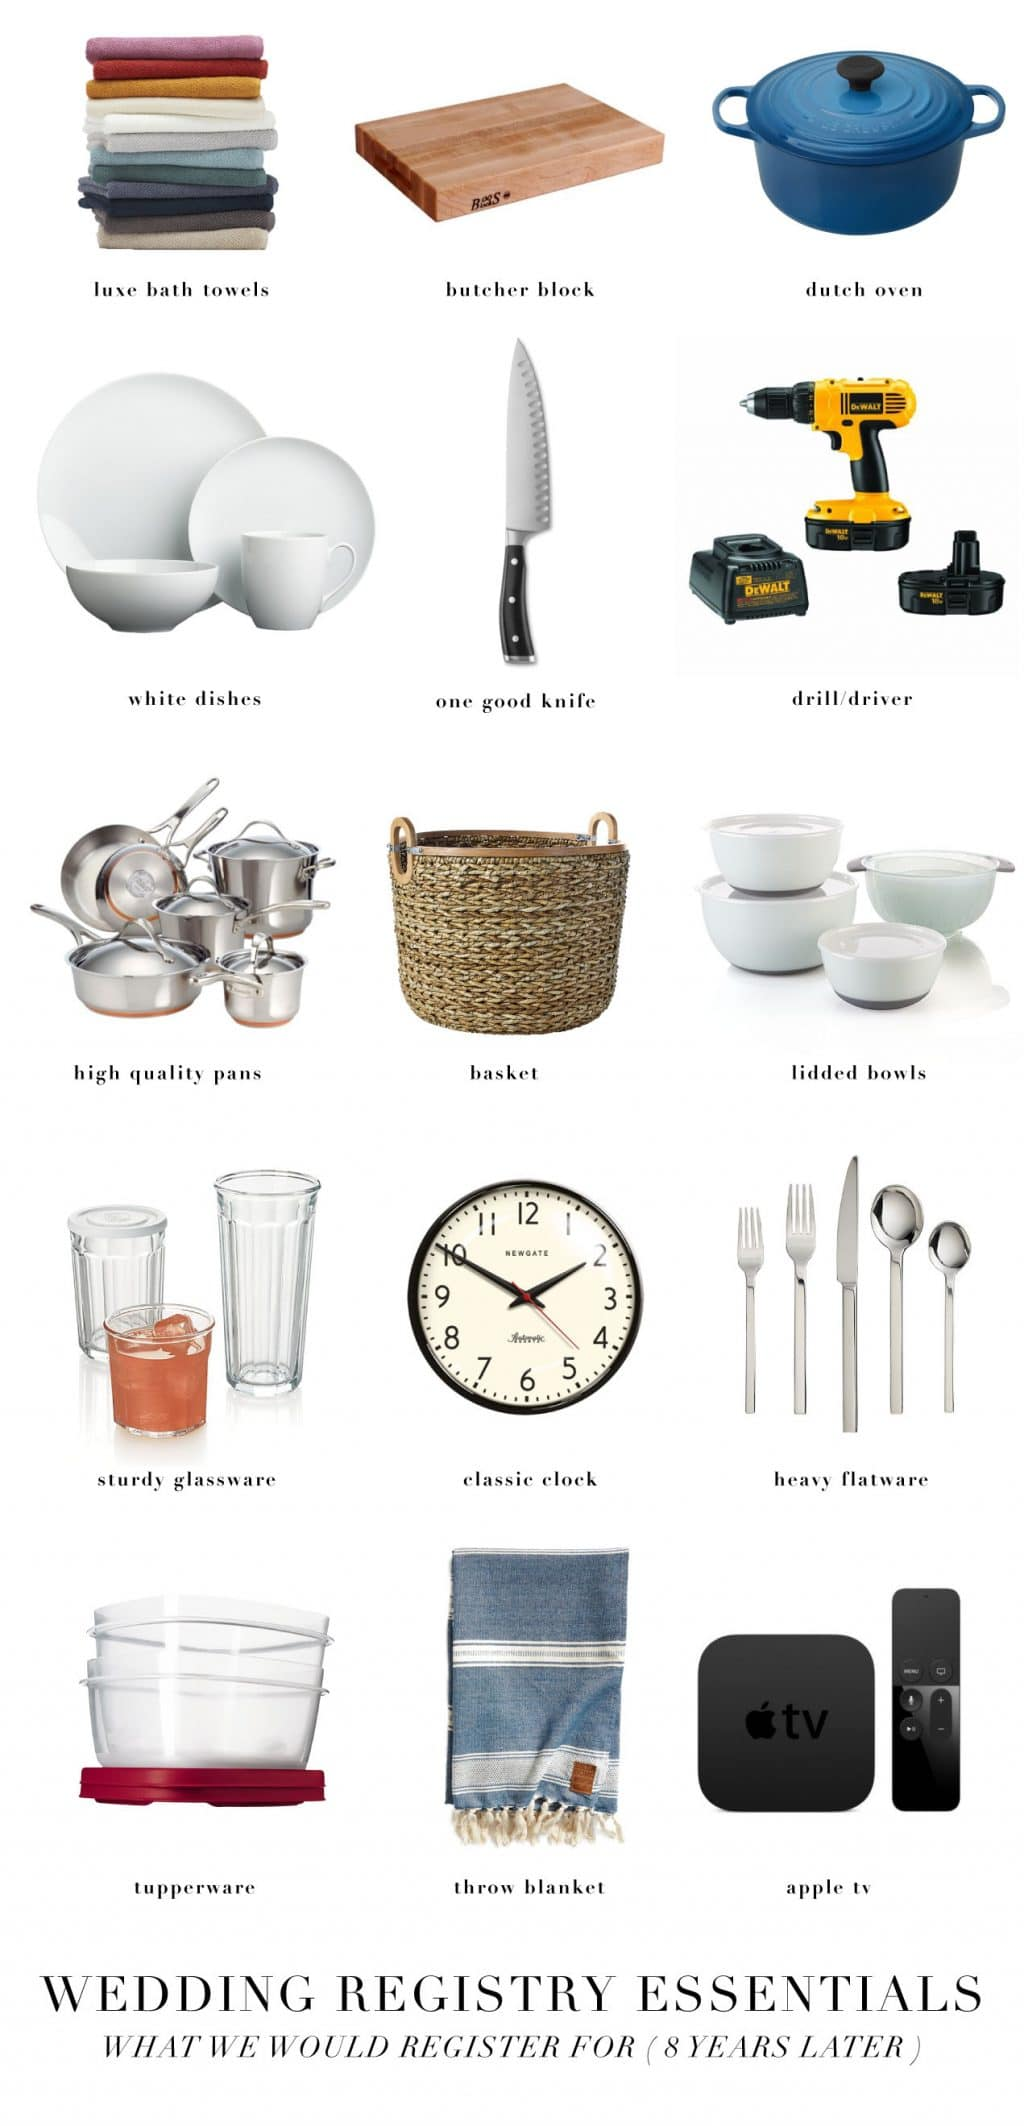 WEDDING-REGISTRY-ESSENTIALS